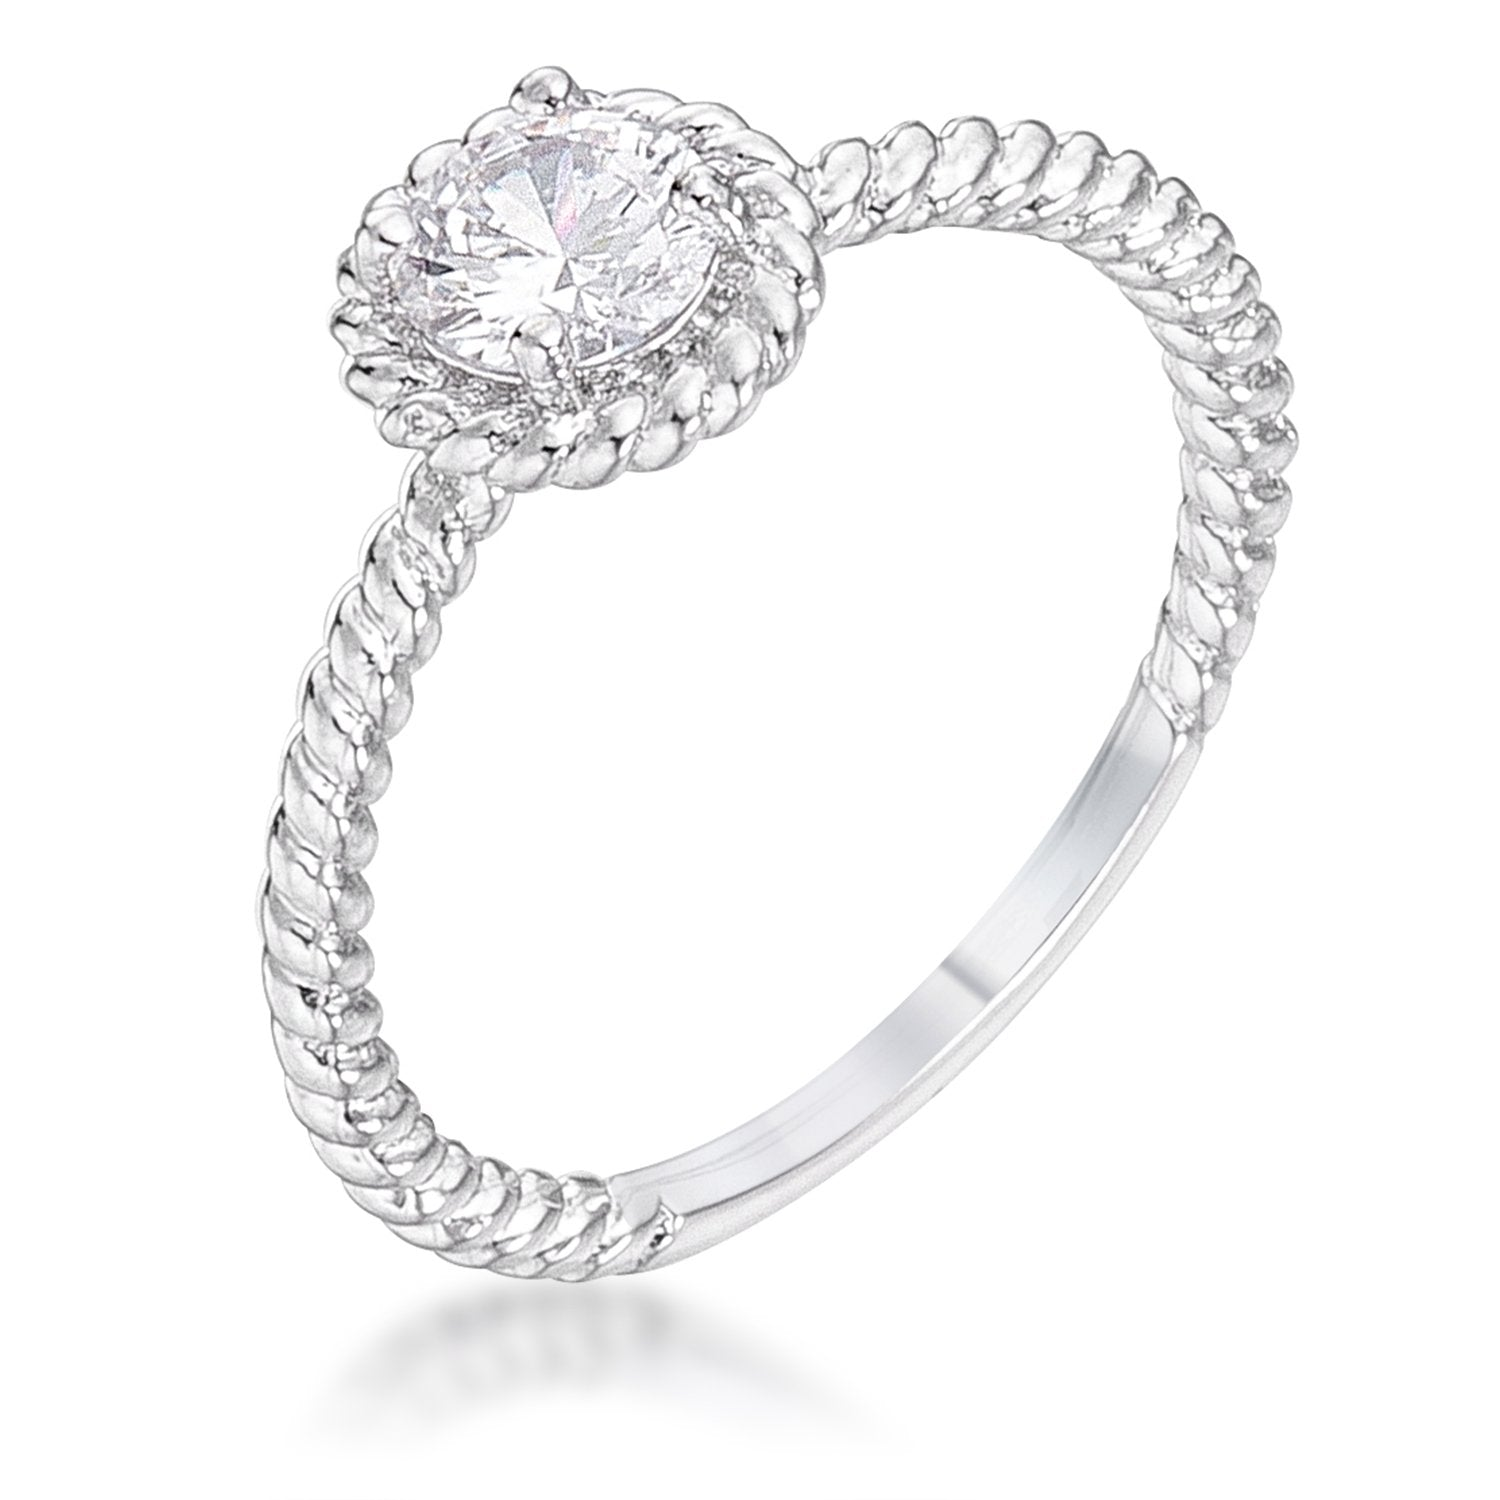 .45Ct Rhodium Plated Mini Twisted Rope CZ Solitaire Engagement Ring - Opulent Lifestyle